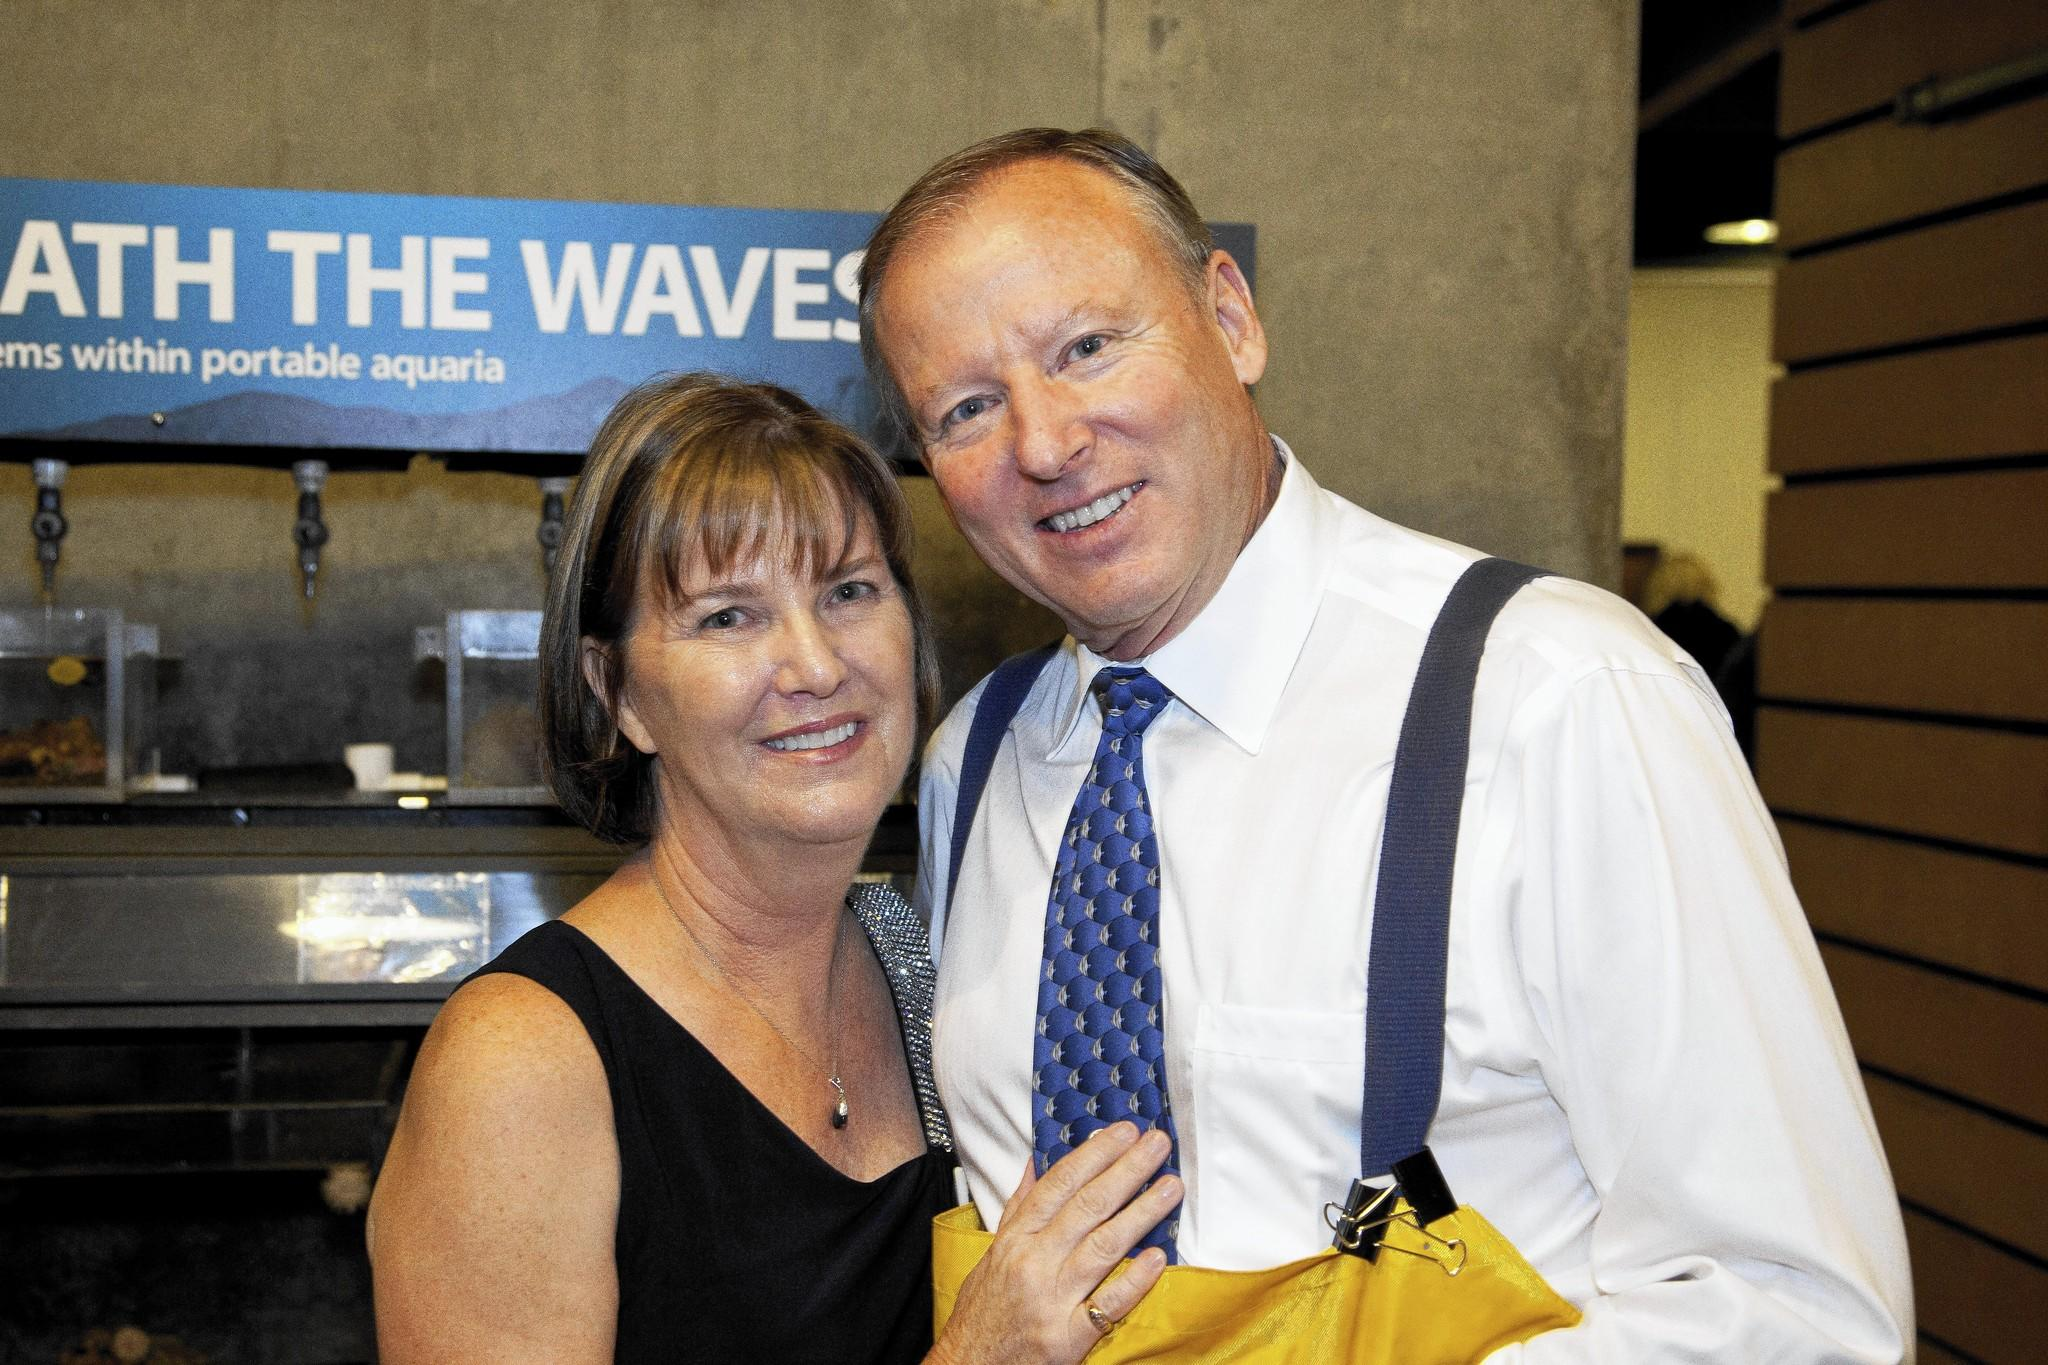 More than 600 patrons, including Dan and Roxanne Stetson, attended the 2014 Jazz Festival.